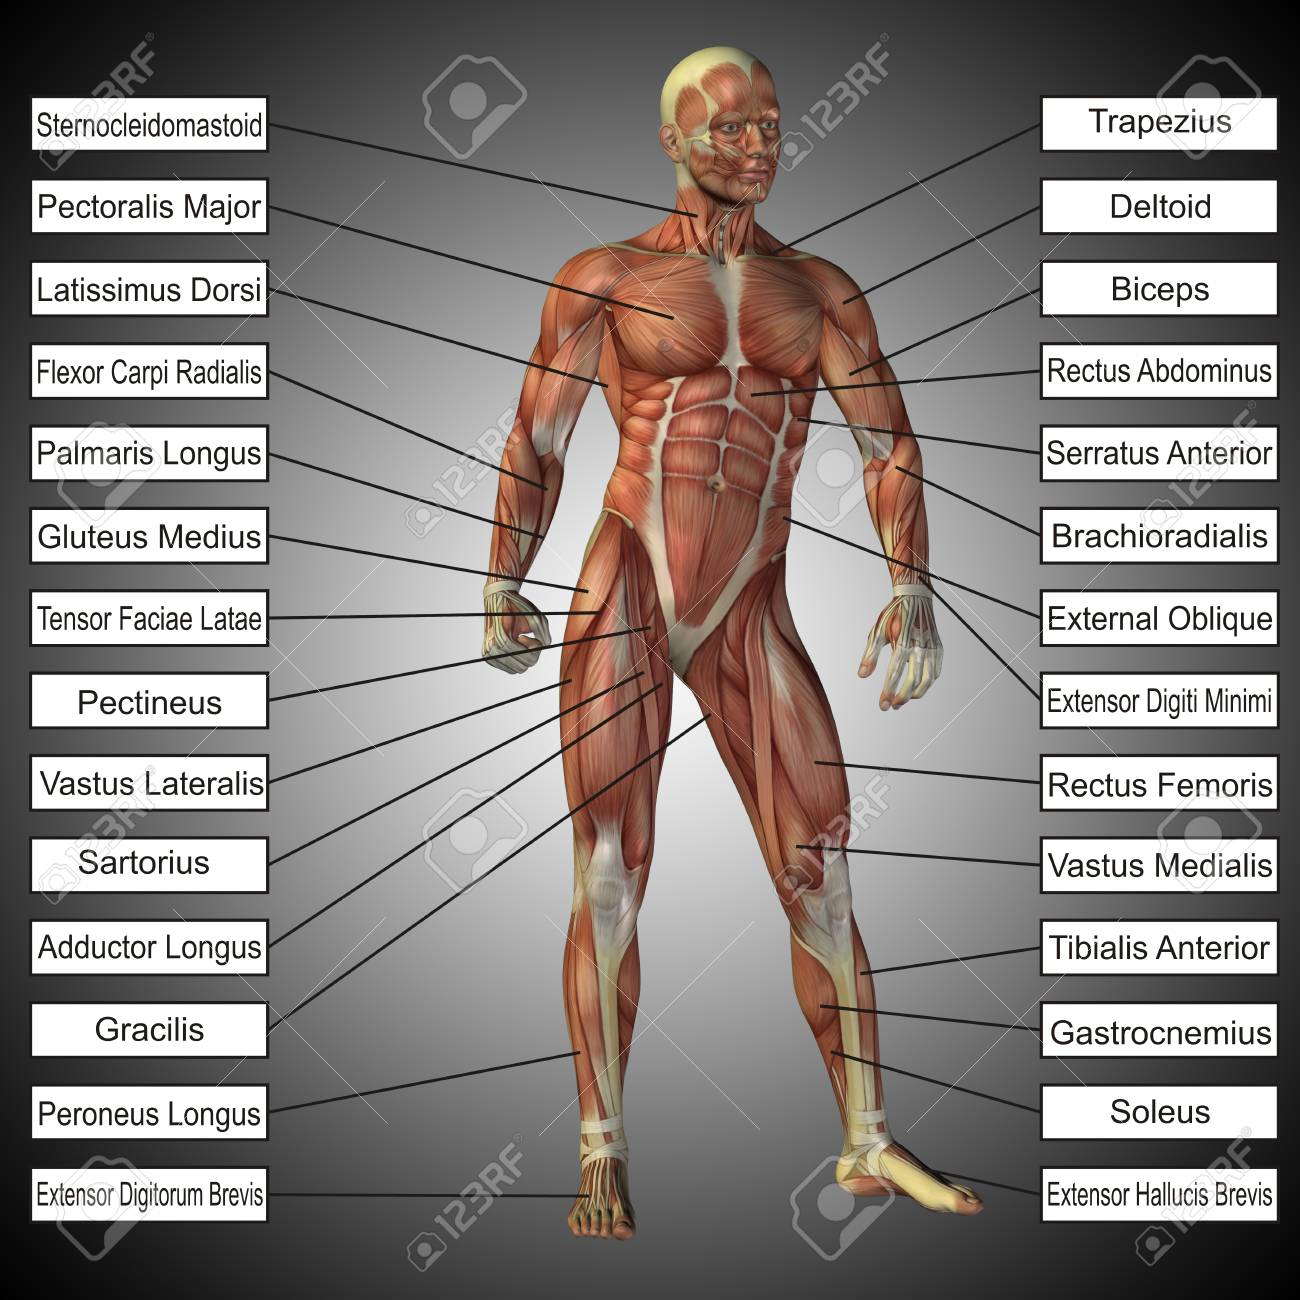 3d Human Male Anatomy With Muscles And Text On Gray Background Stock